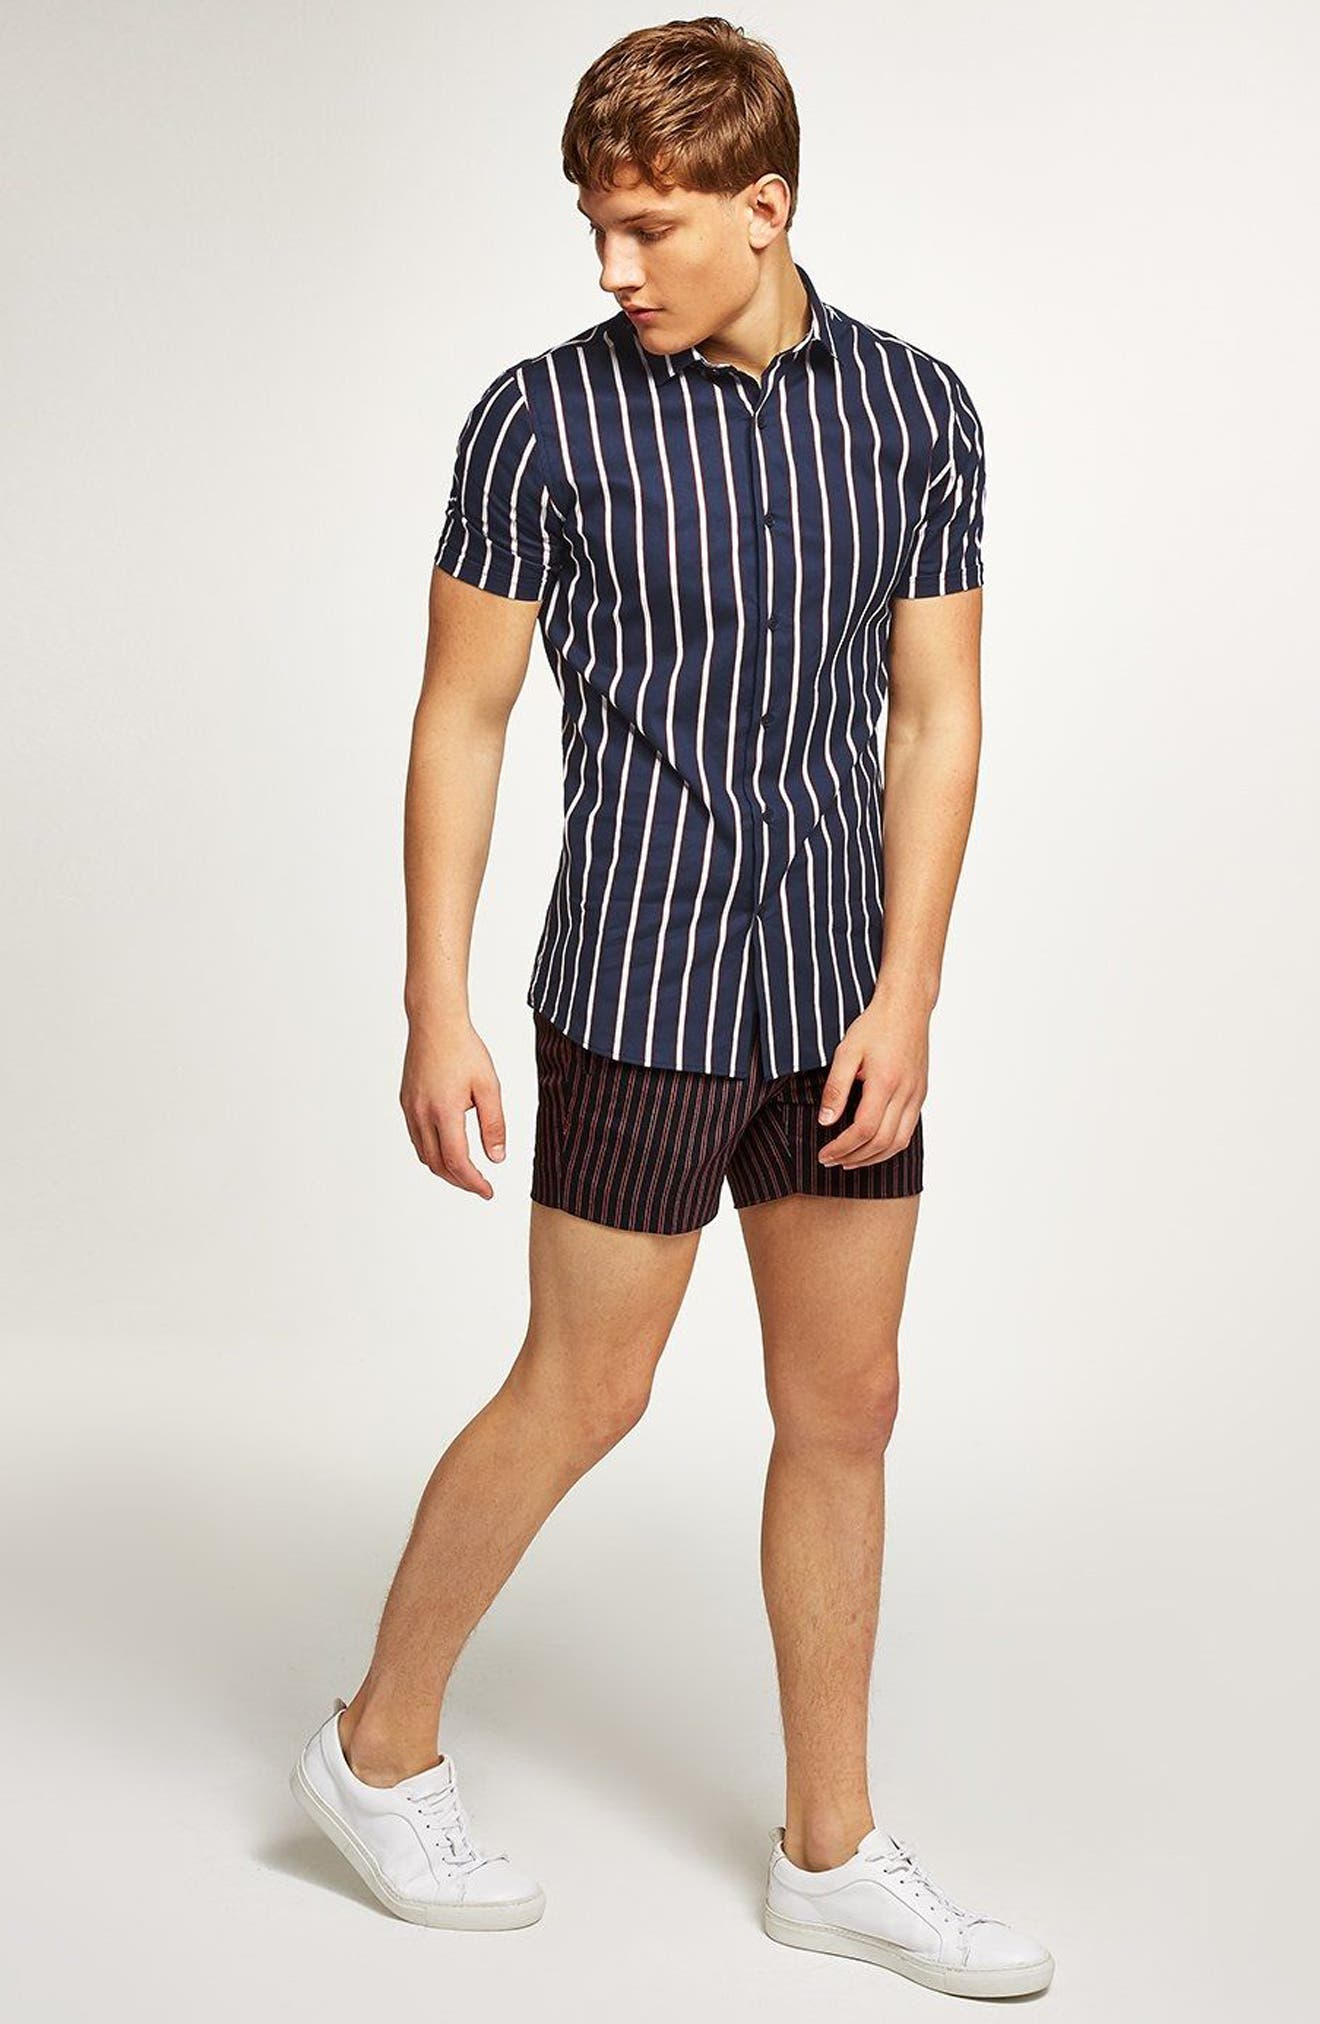 Muscle Fit Resort Stripe Shirt,                             Alternate thumbnail 5, color,                             411